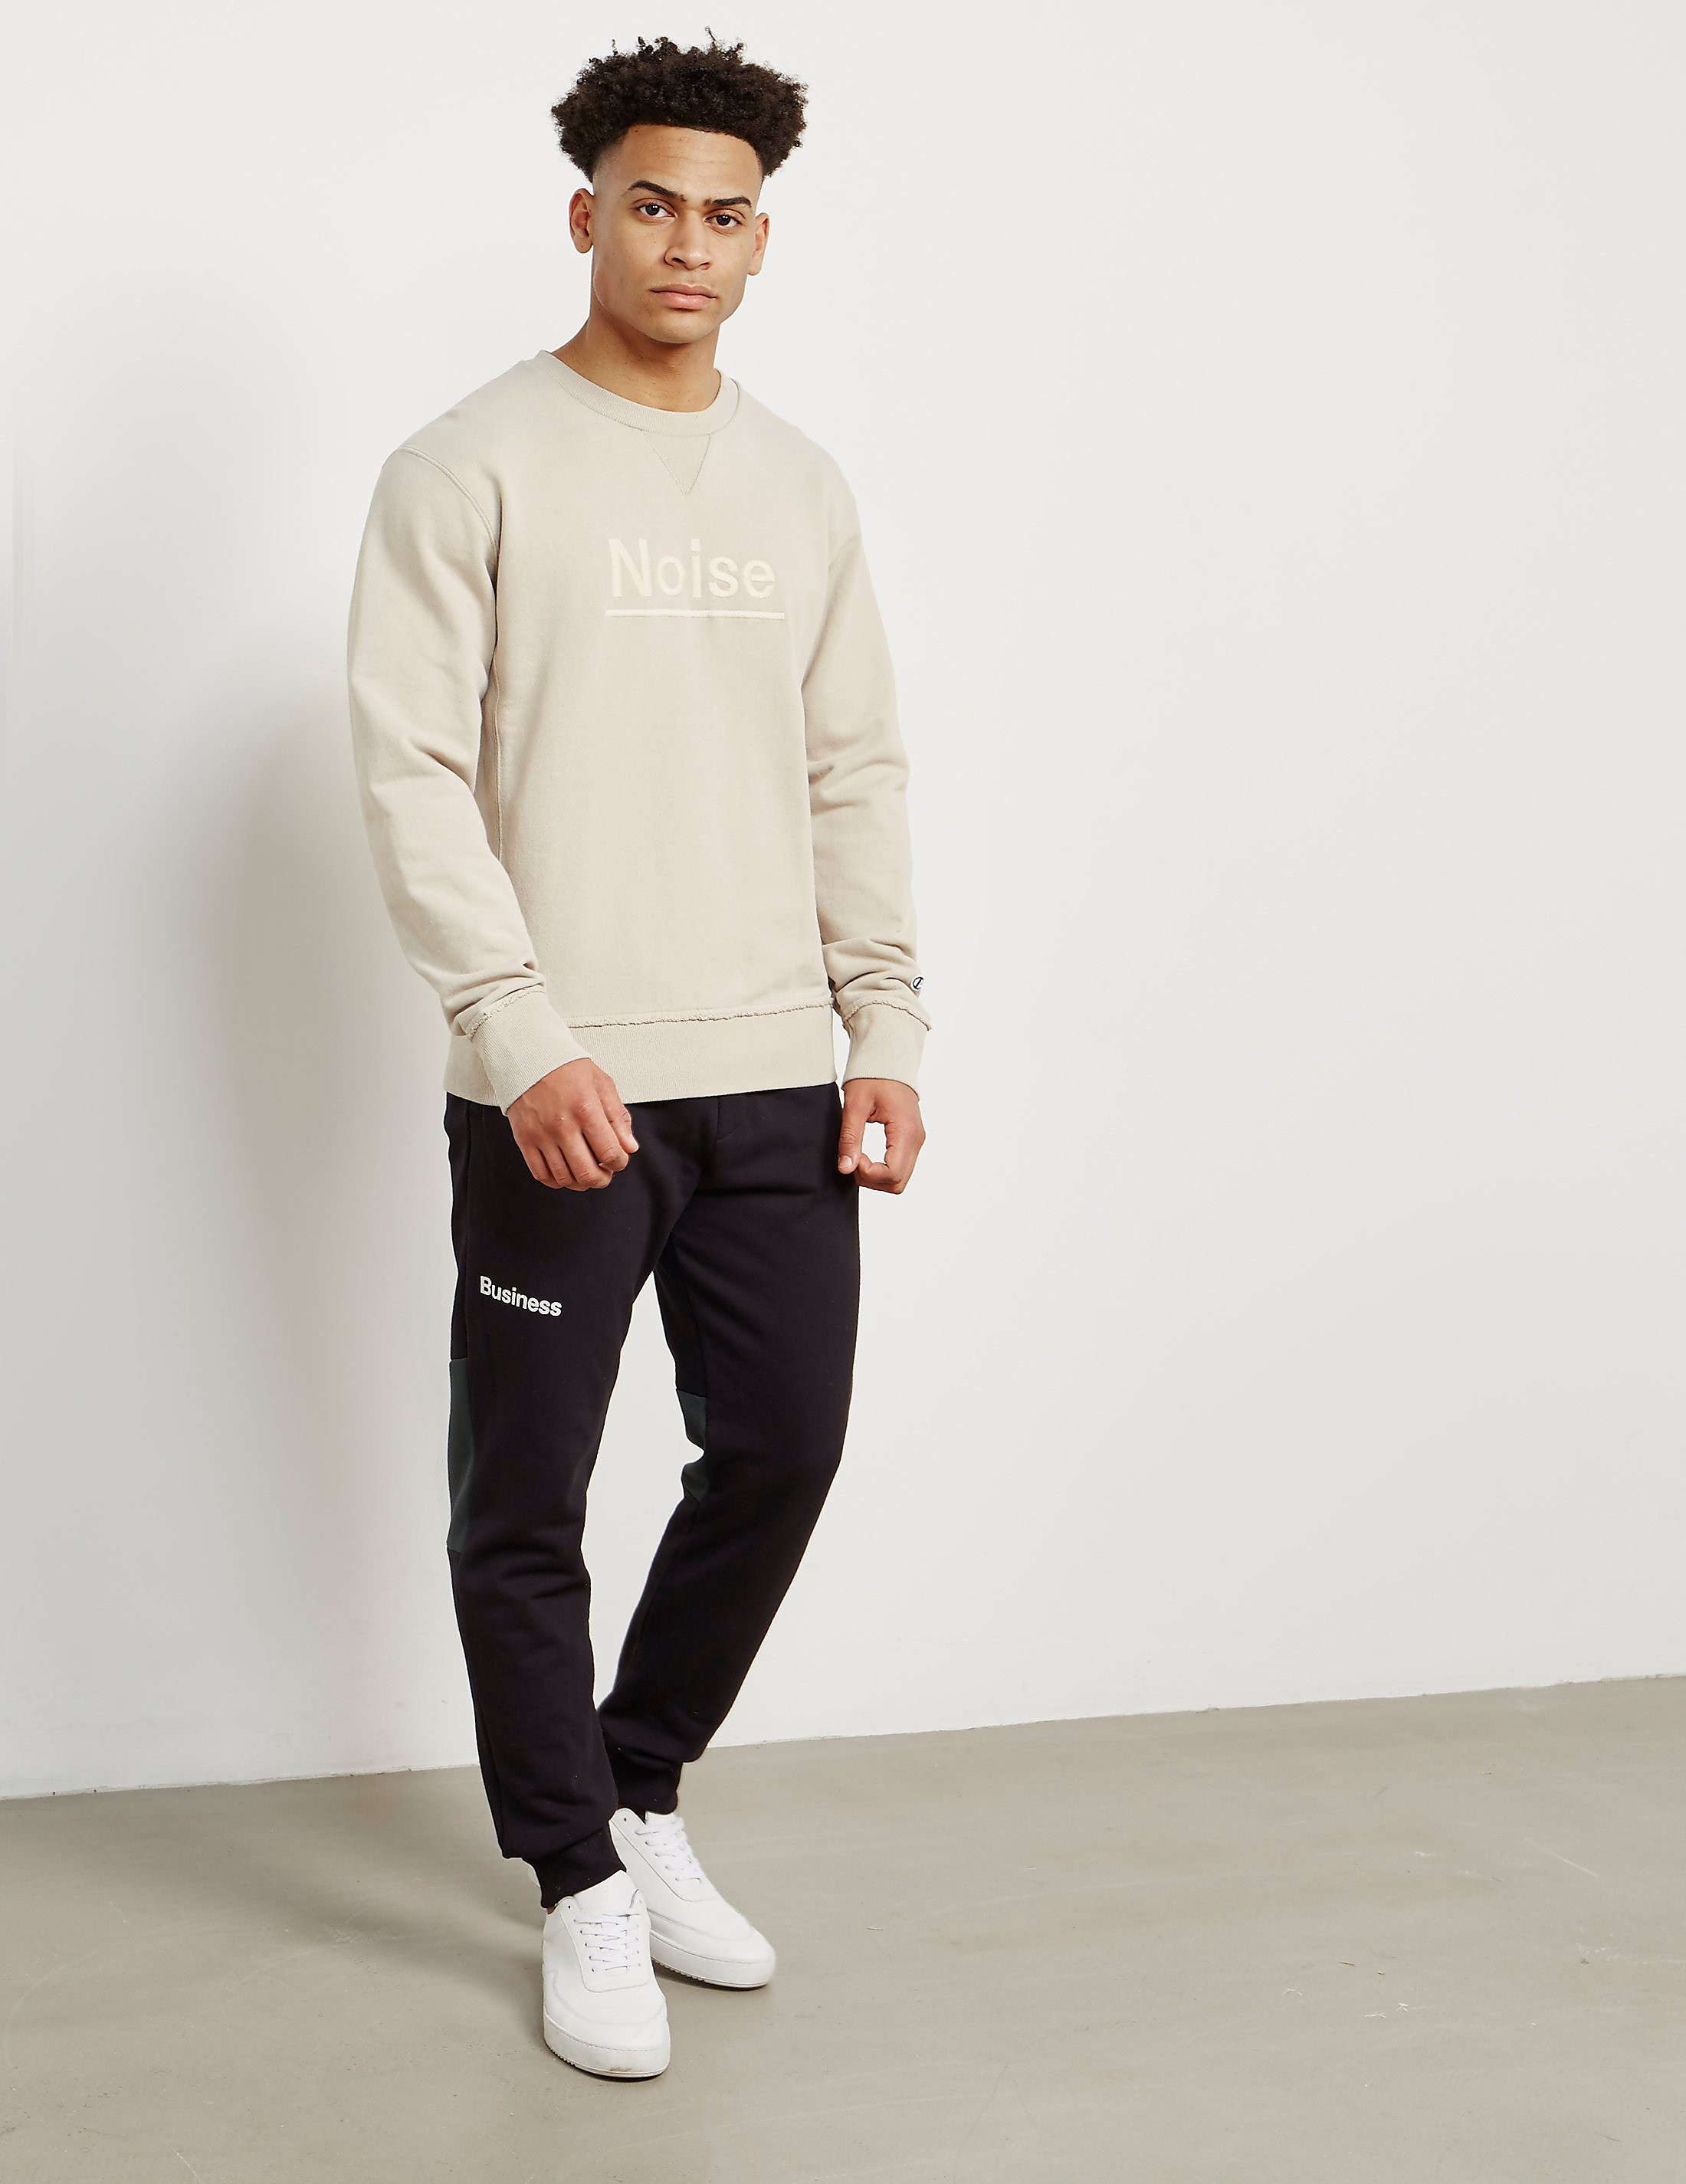 Champion x Wood Wood Noise Crew Sweatshirt